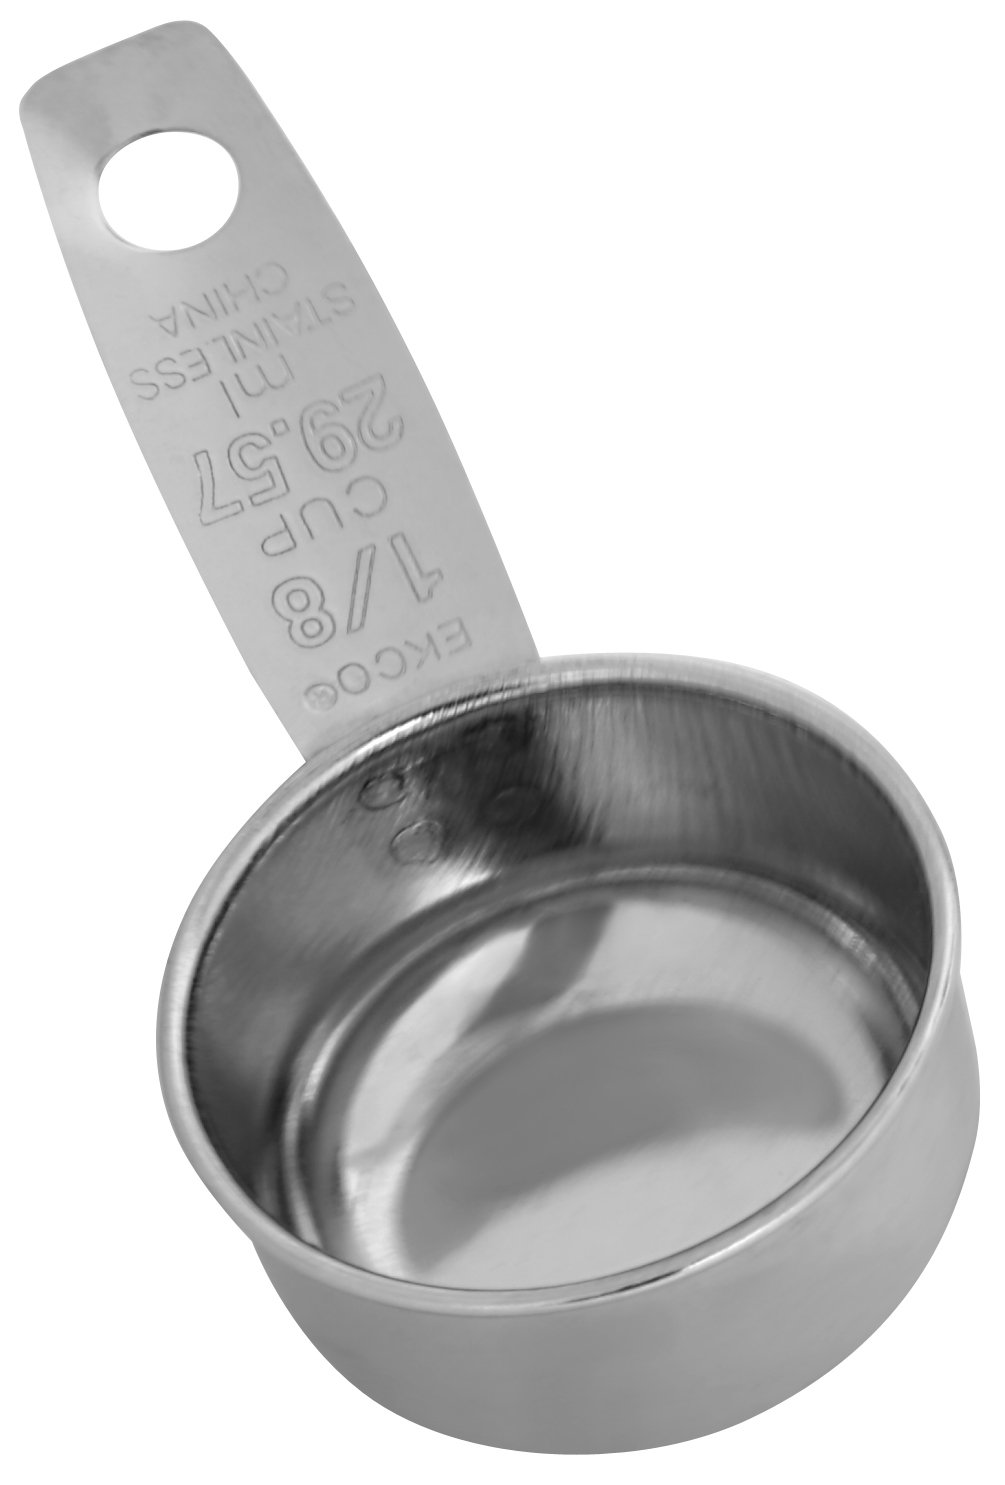 Ekco Coffee Scoop 1094900